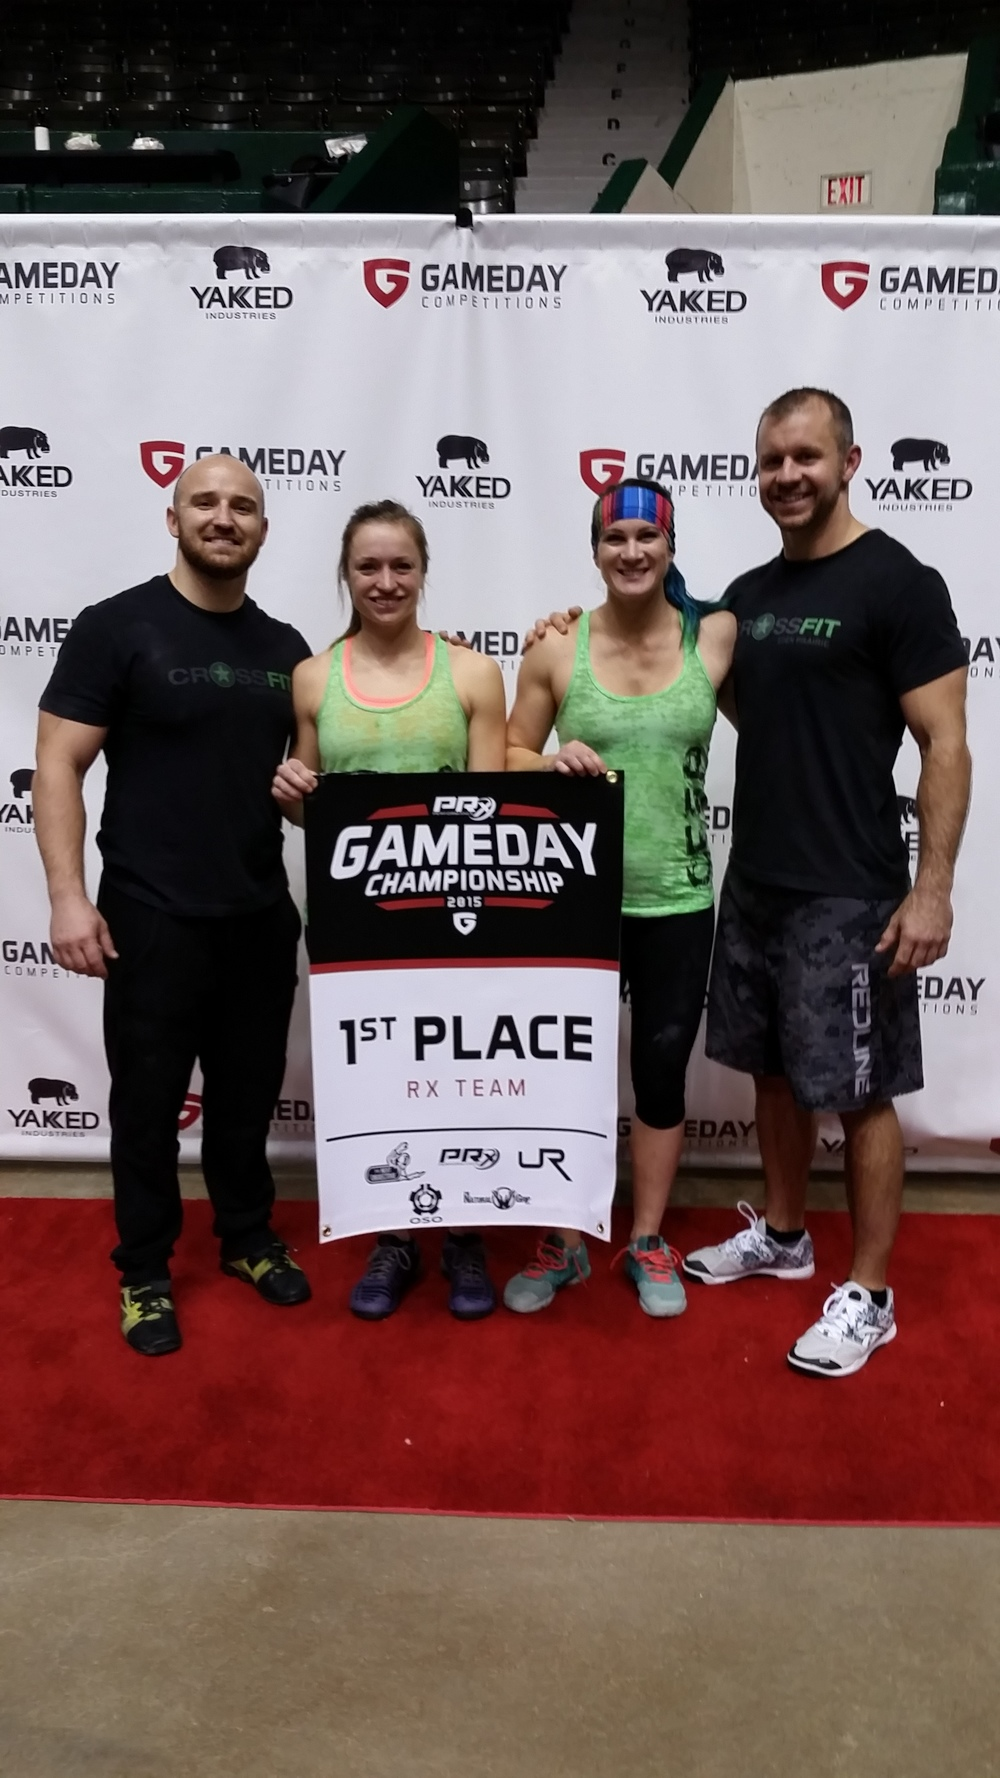 Curt, Kelsey, M'Kelle and Scib represented CFEP/CFPL and took first place last weekend at the Game Day Competition in St. Paul. Great work guys & gals!